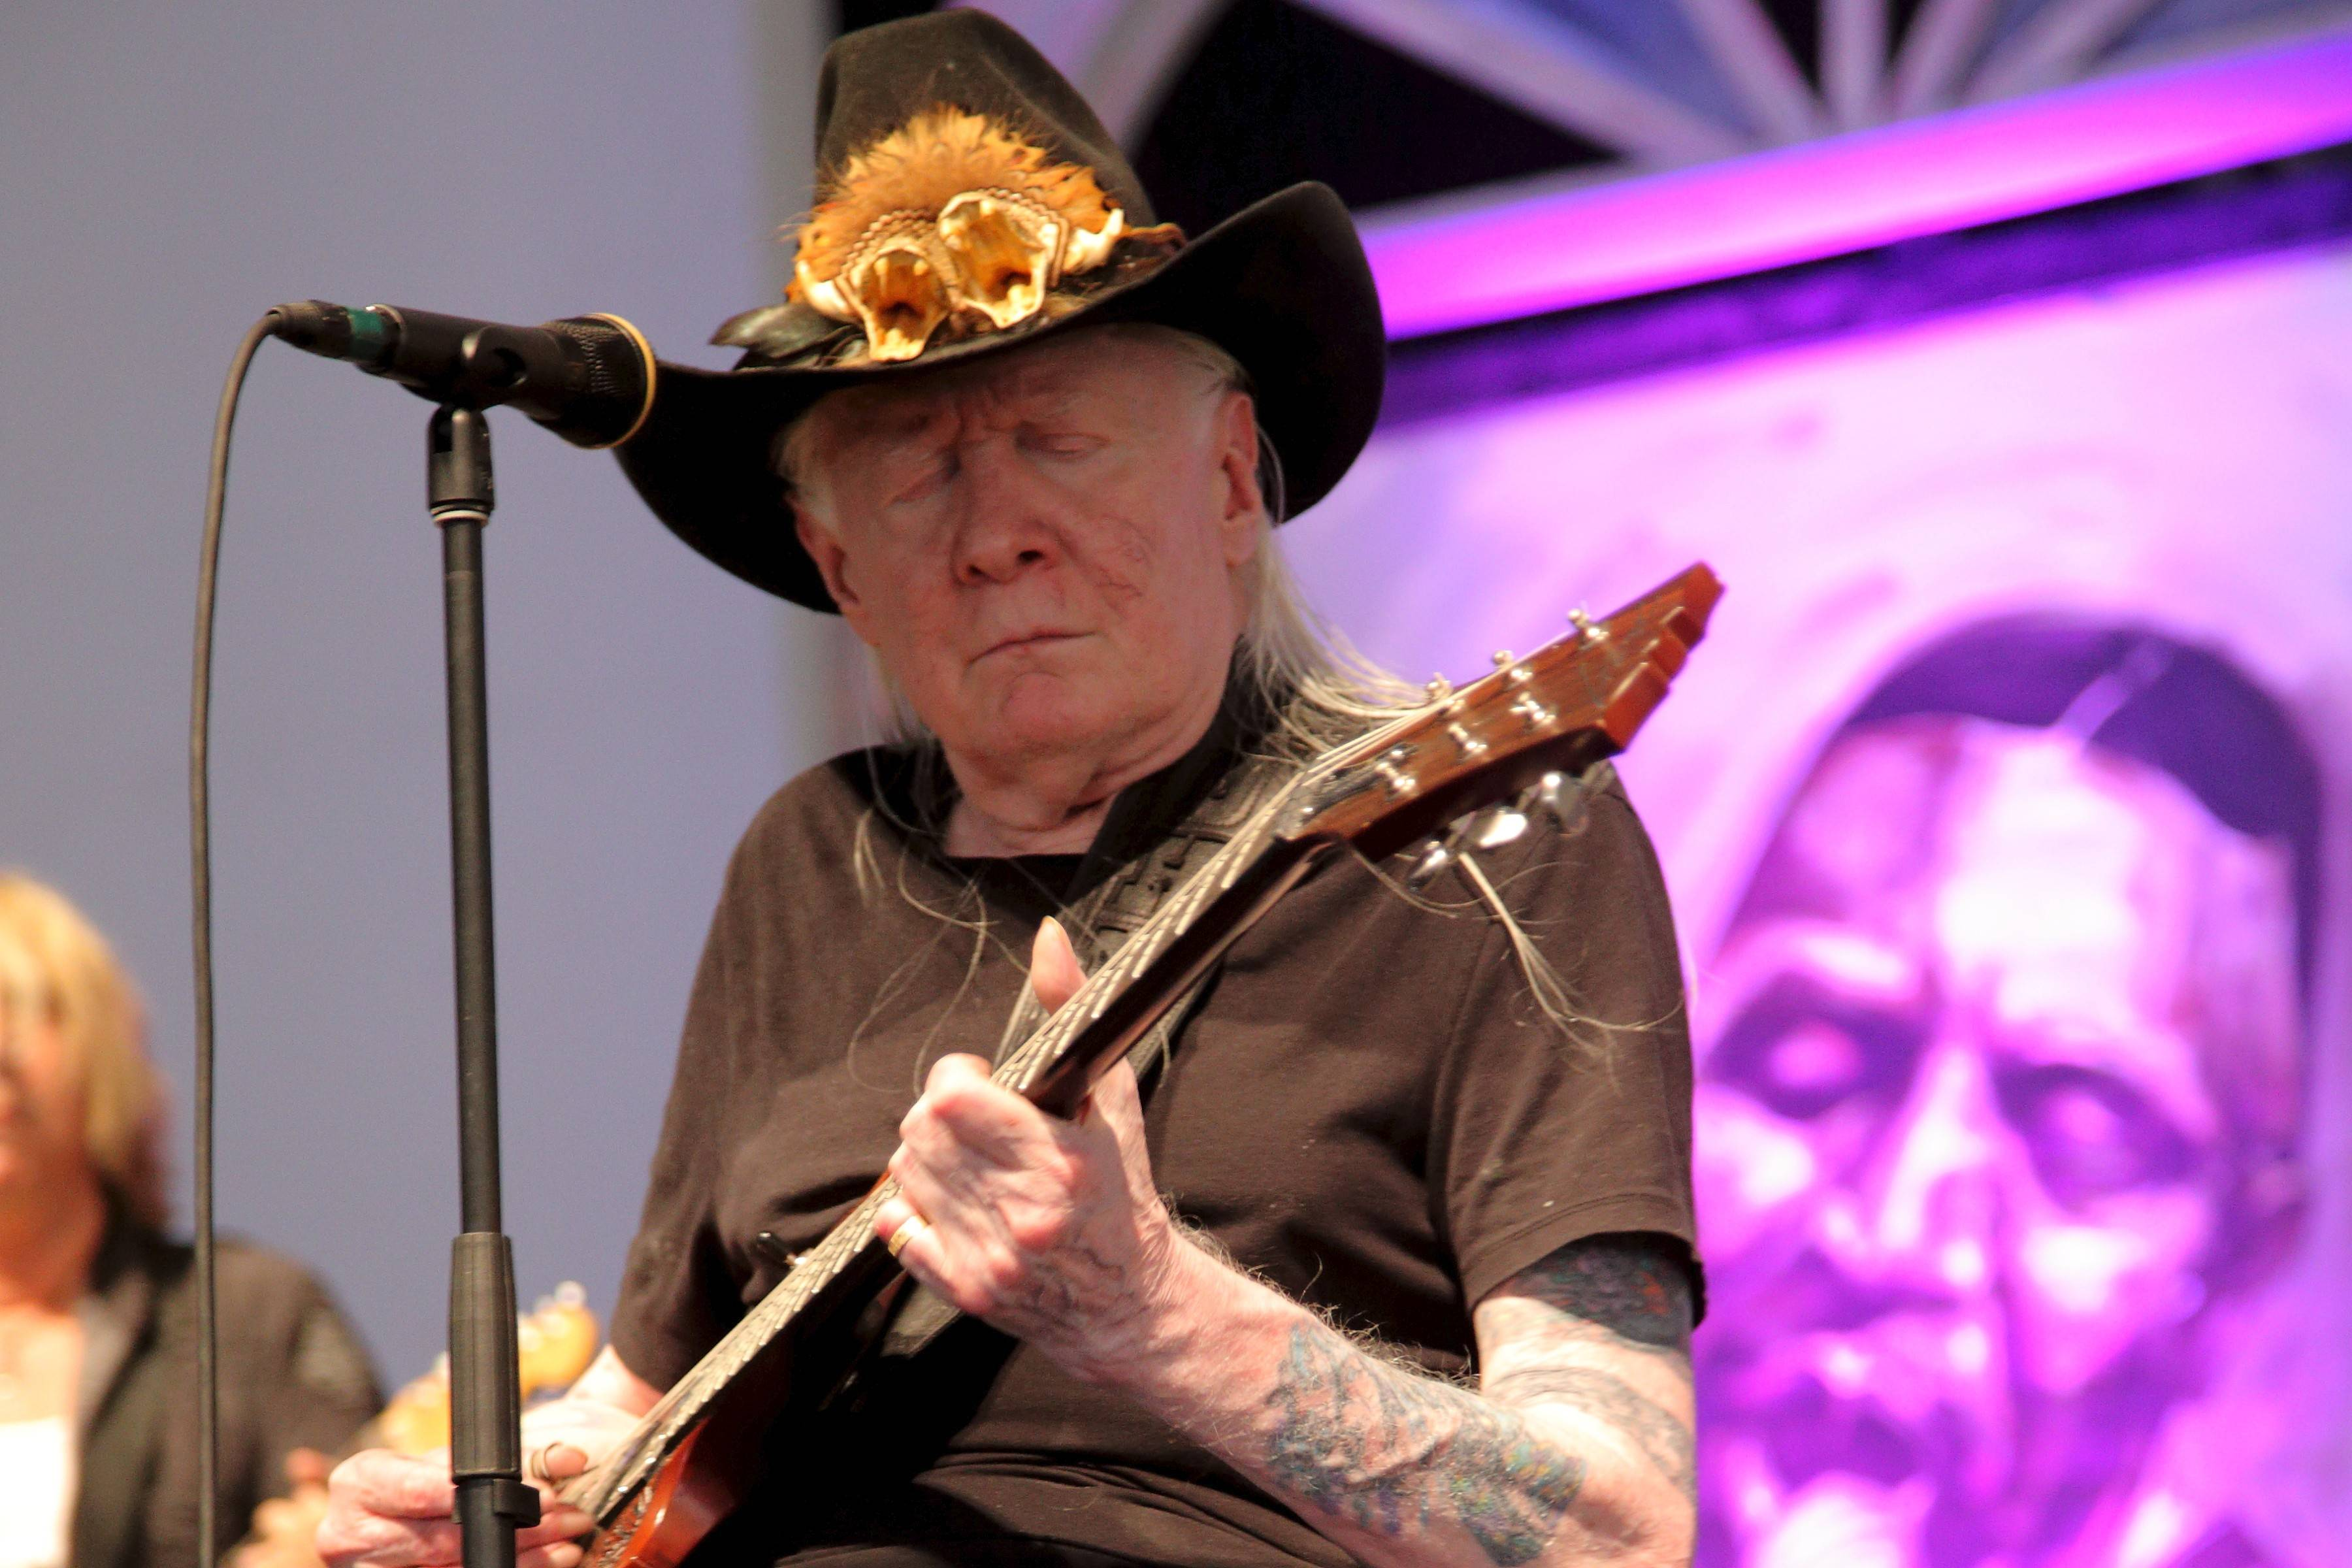 Johnny Winter performed at the 2014 New Orleans Jazz & Heritage Festival this past May and was slated to appear with his brother, Edgar, next month at the Genesee Theatre in Waukegan. Now, the Aug. 10 concert will be a tribute to Johnny Winter, who died last week.